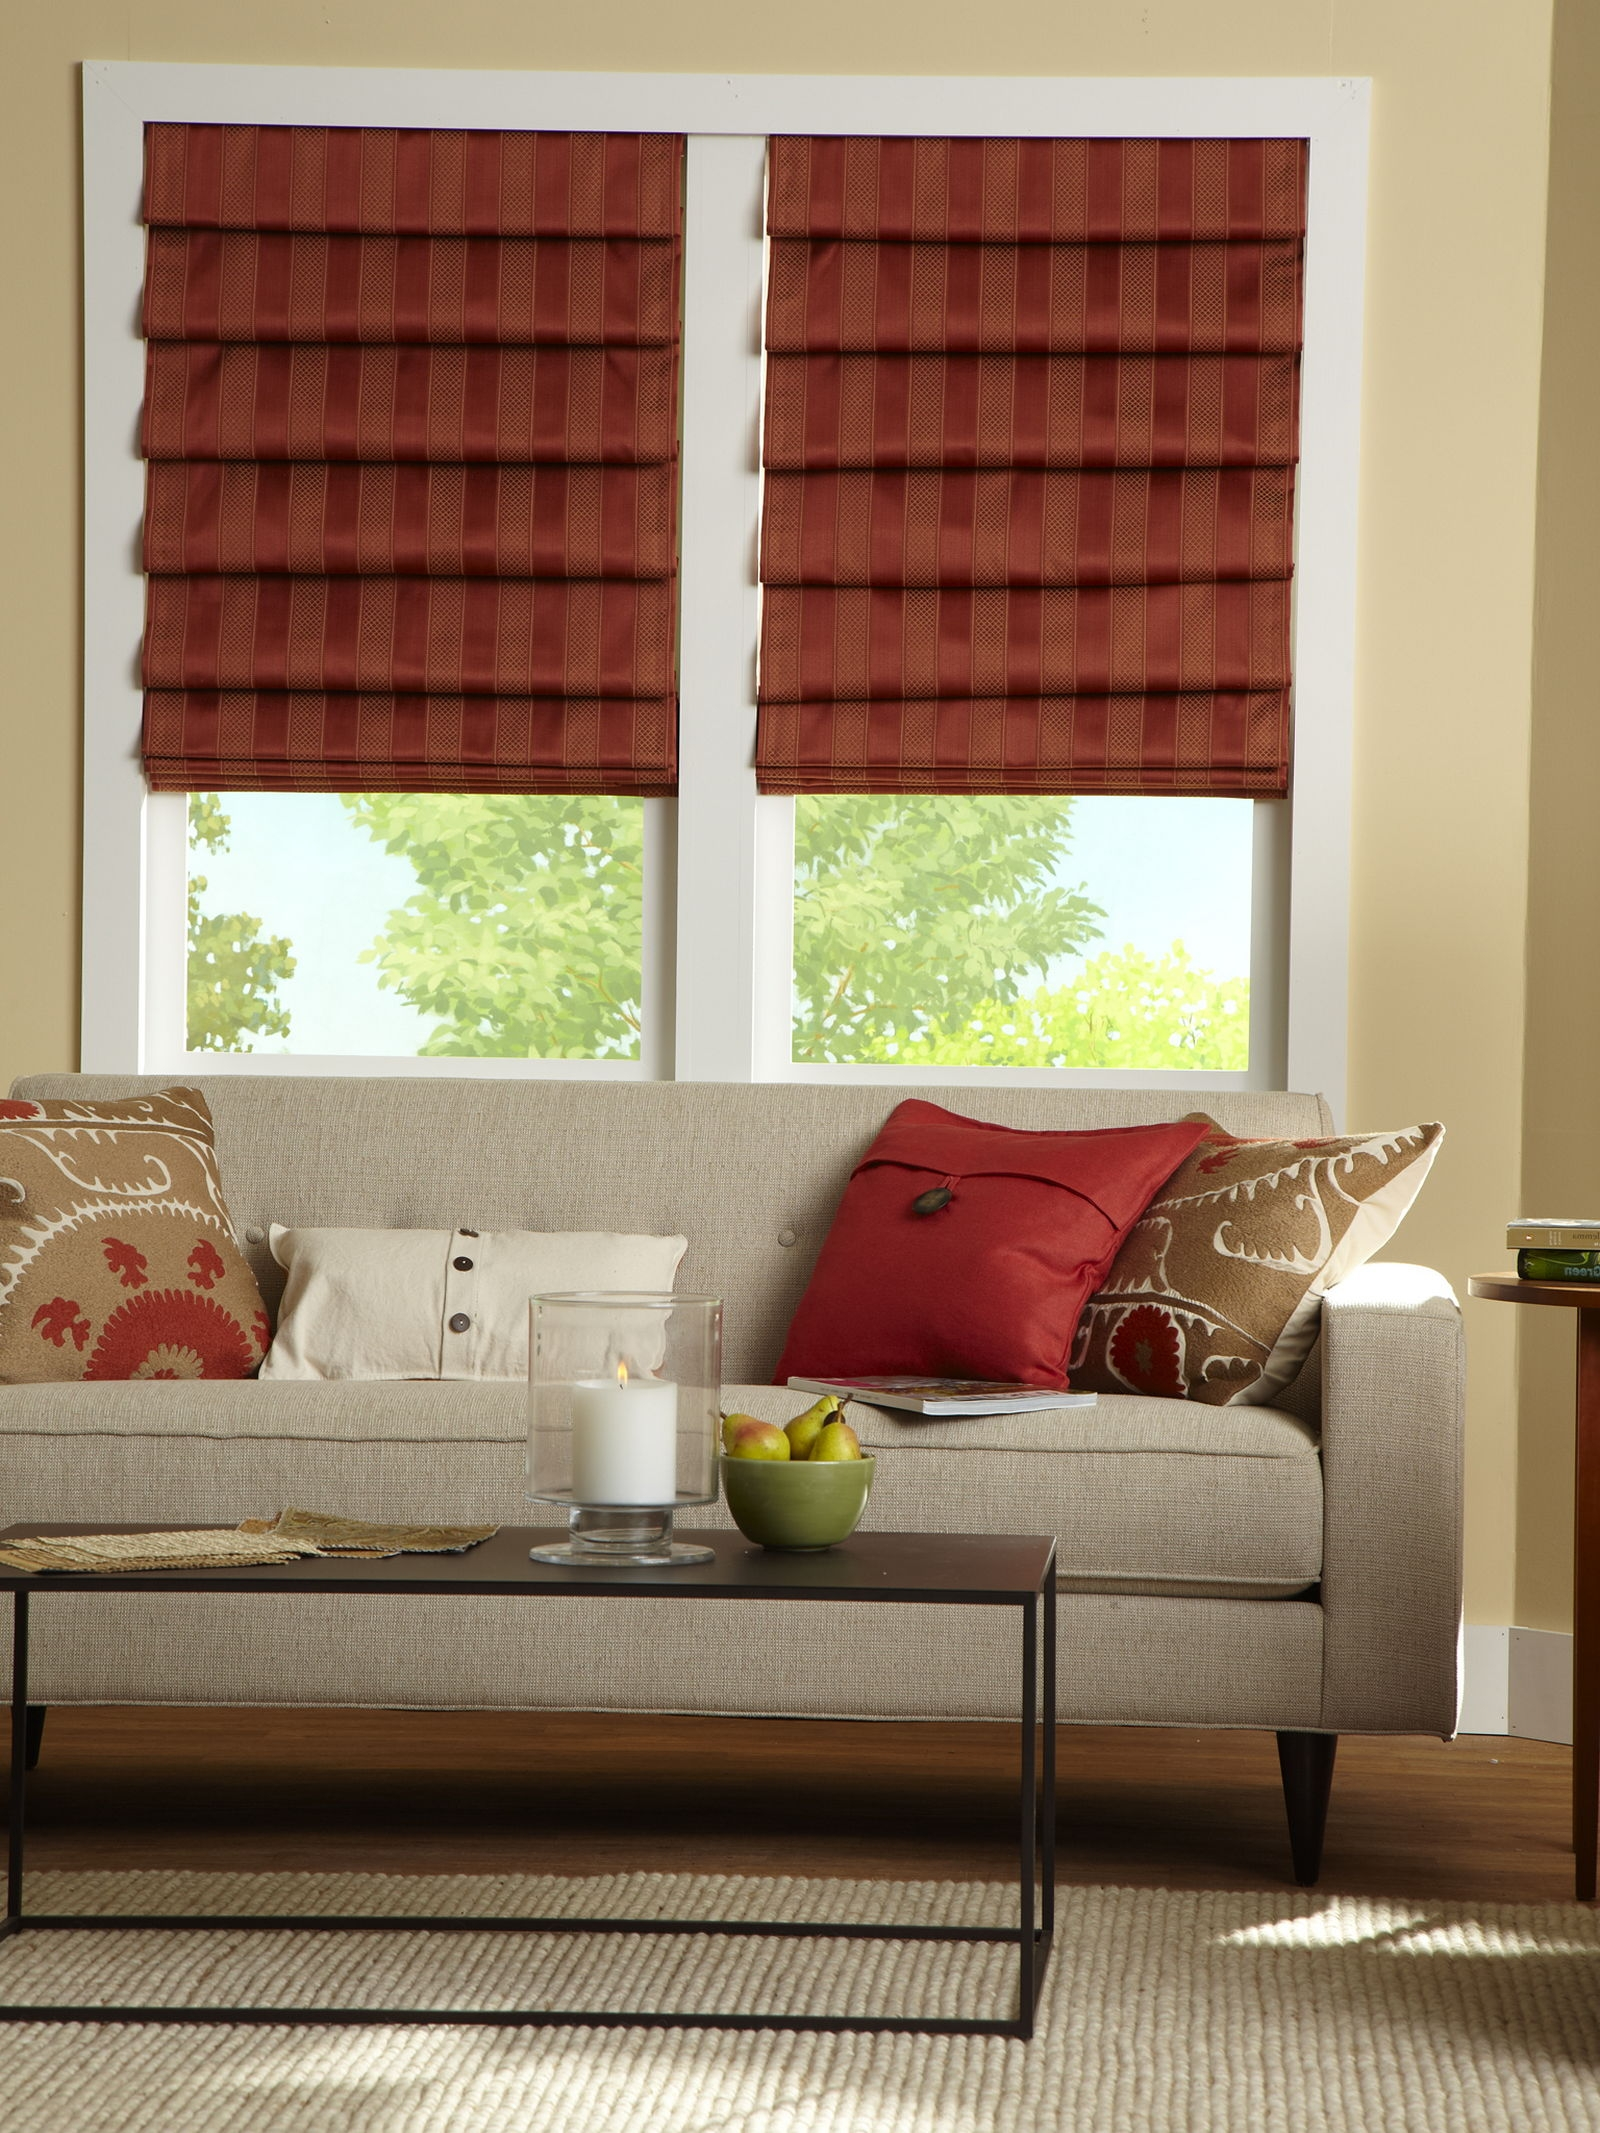 Living Room Curtains The Best Photos Of Curtains Design With Regard To Front Room Blinds (View 8 of 15)